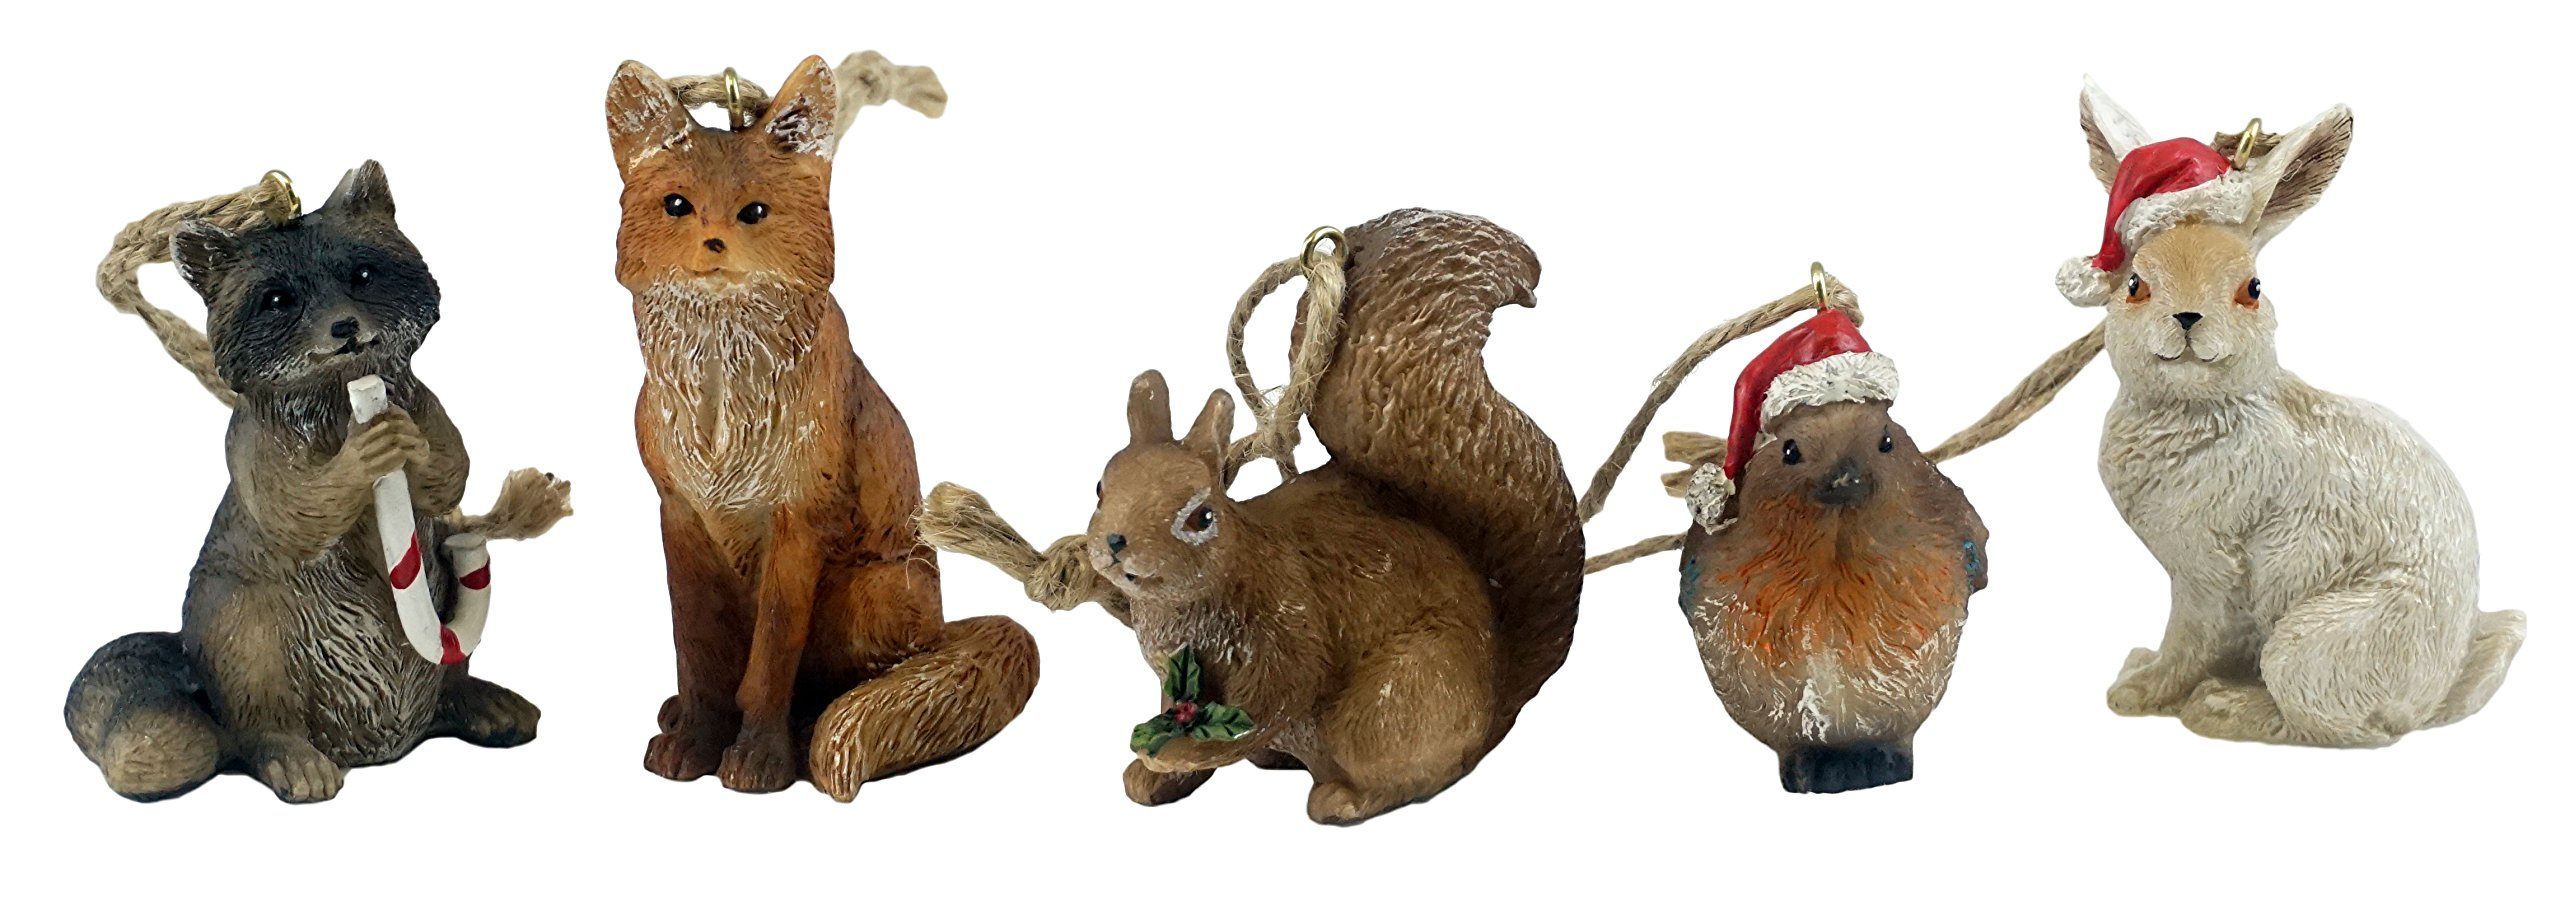 Woodland Animal Hanging Christmas Ornaments - Set of 5 by Creative Co-op